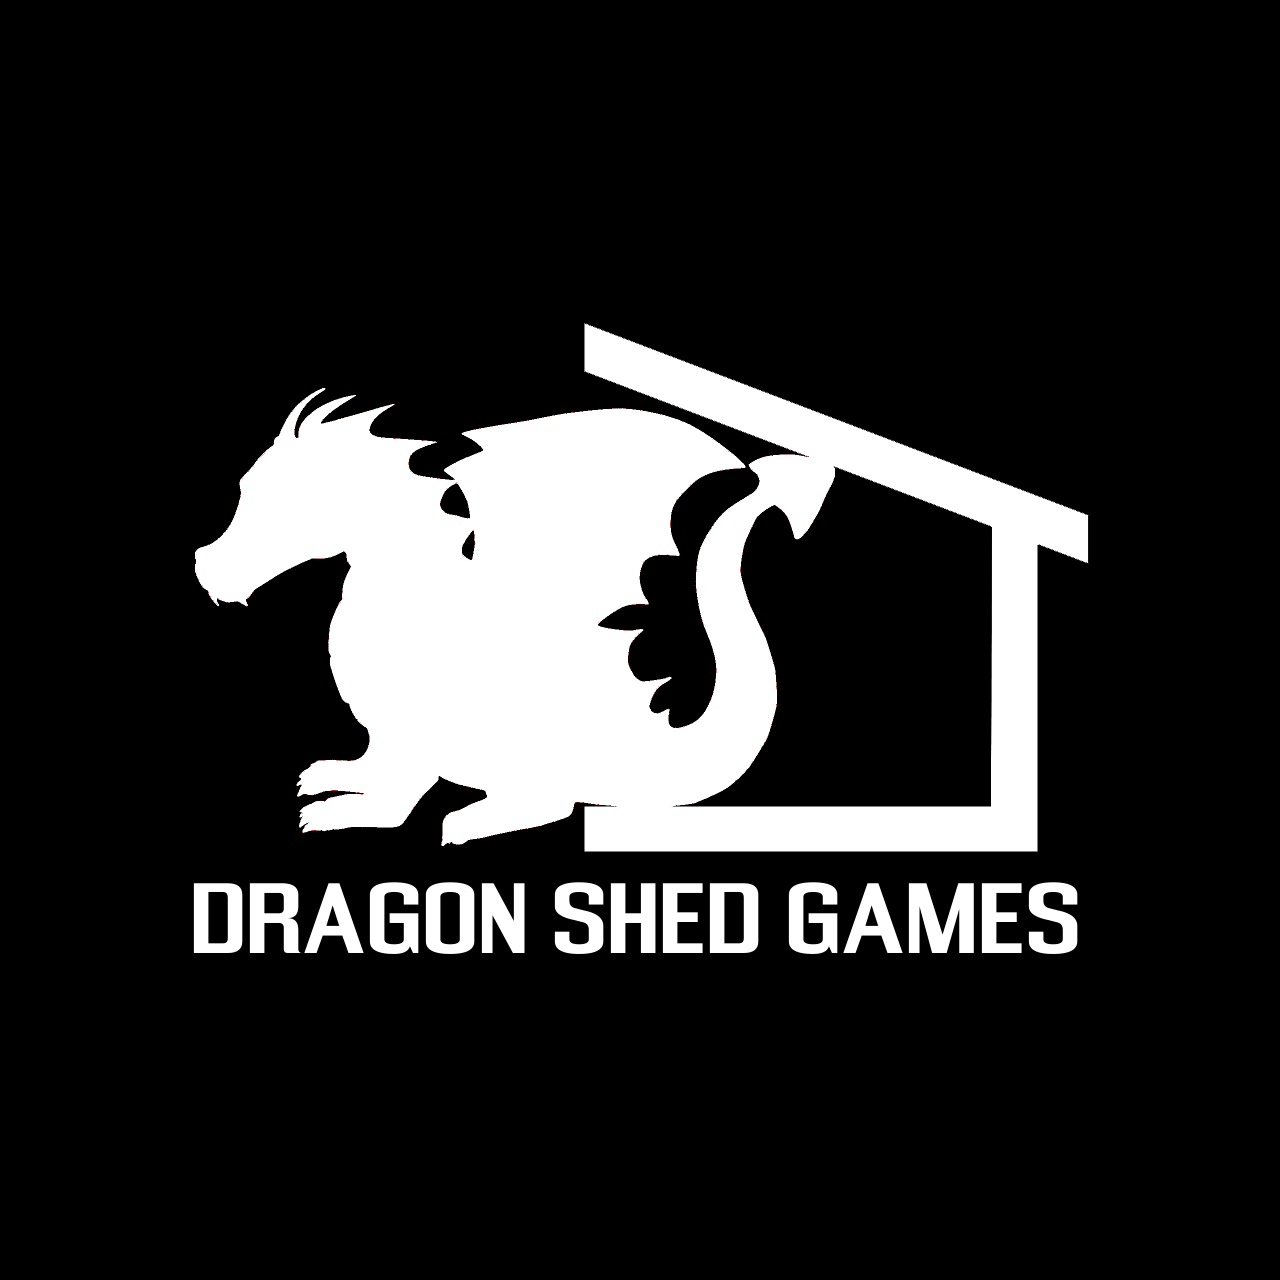 Dragon Shed Games